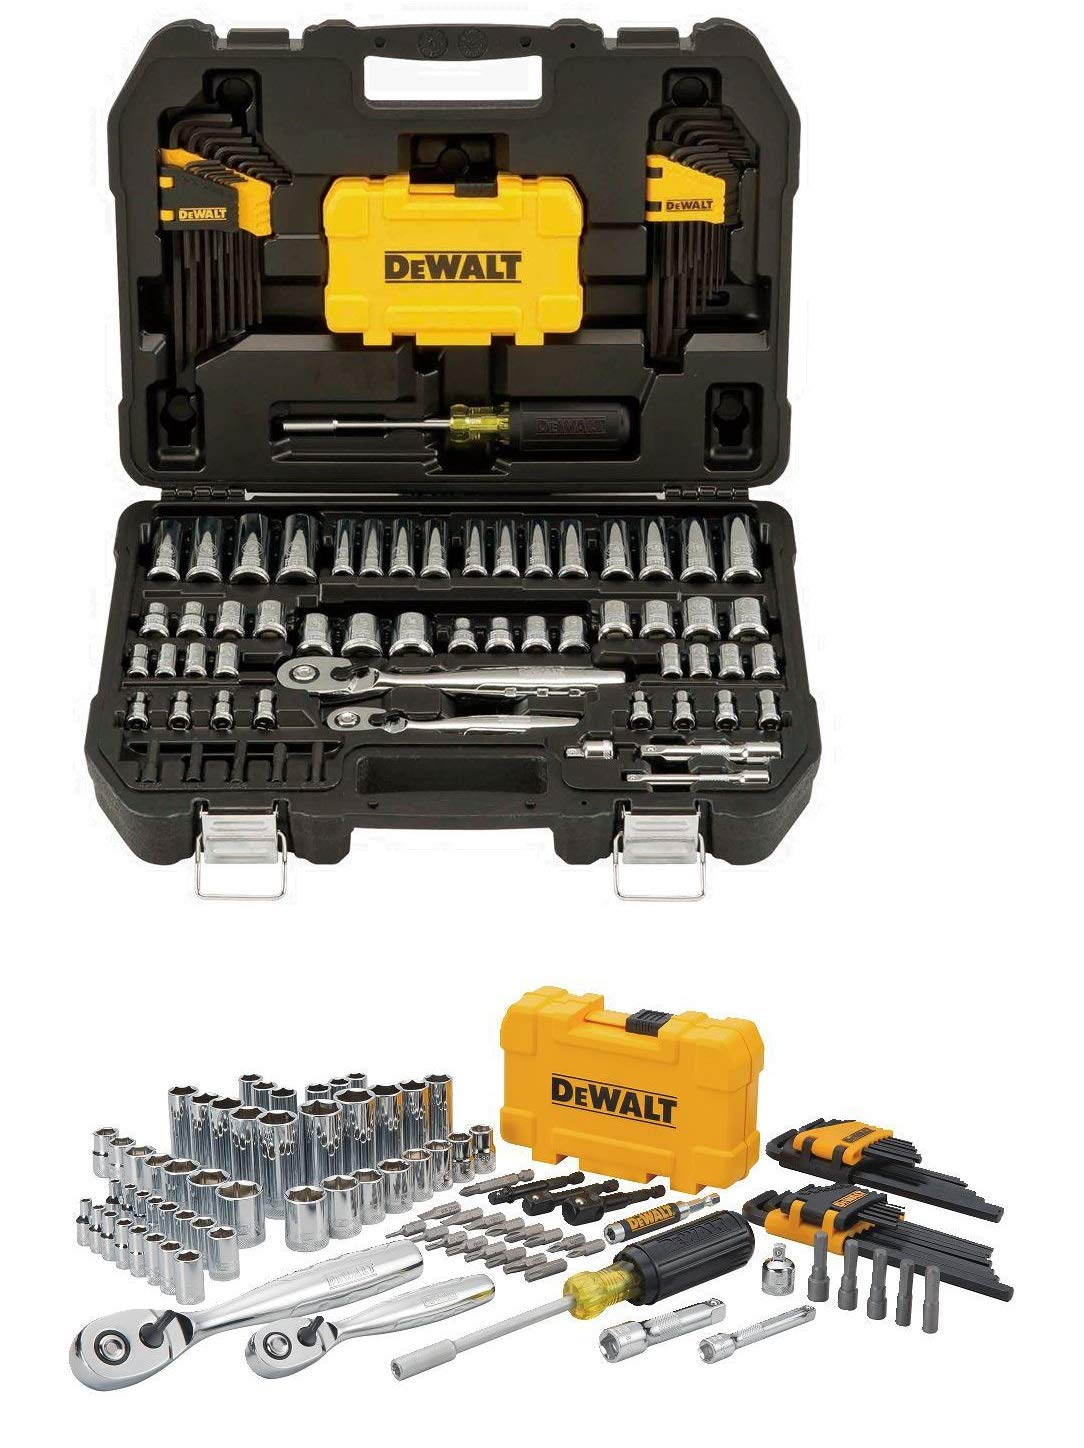 Professional Mechanic Tool Set Chrome with Case (108-Pc). Complete Mechanics Tools Kit w/Box Organizer & Storage has Variety of Automotive Equipment & Accesories for Car Repair. Gift for Men & Women